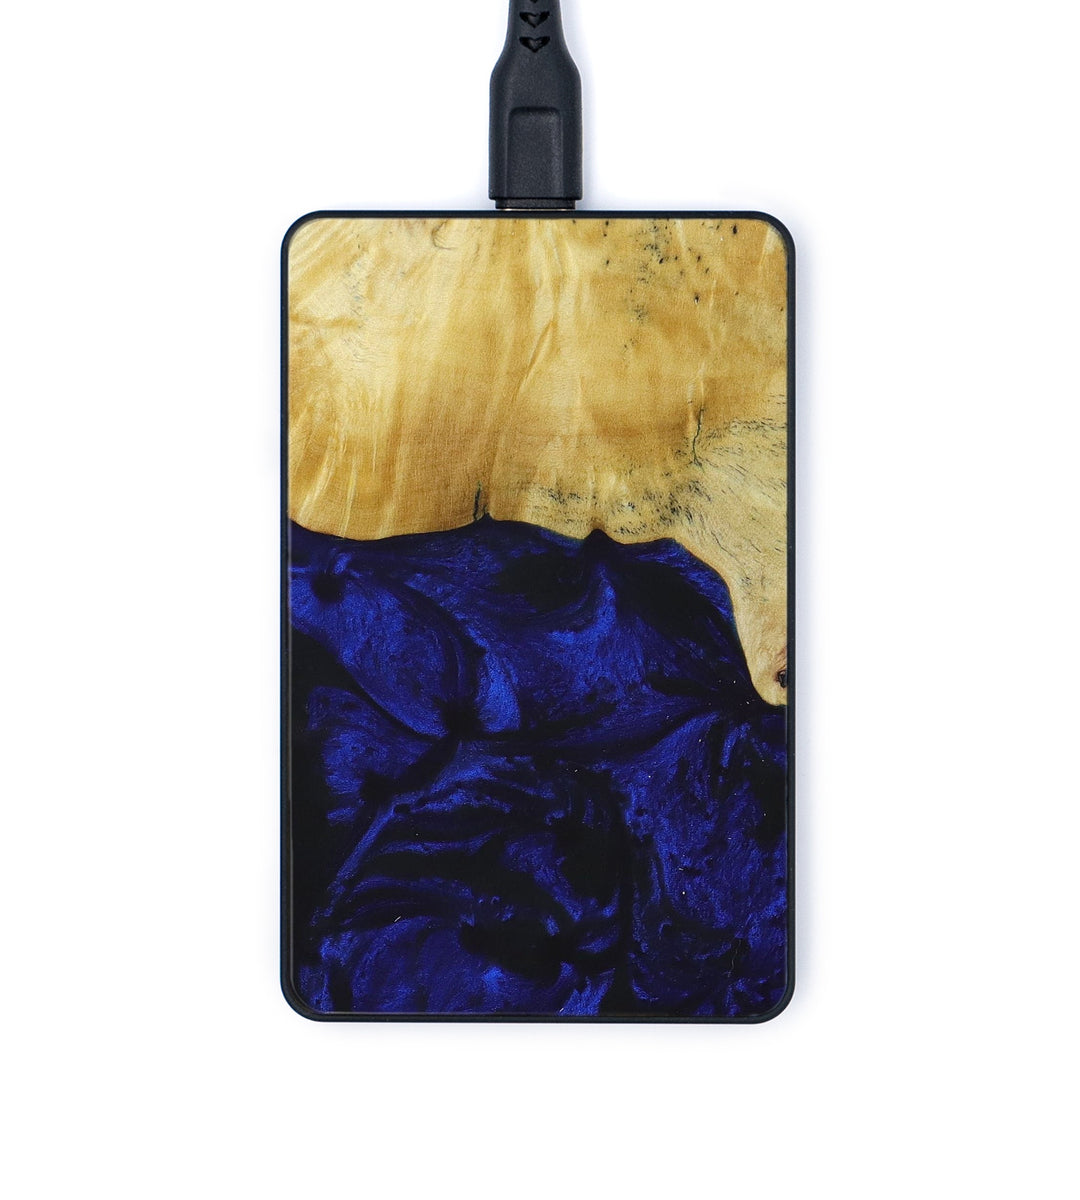 Thin Wood+Resin Wireless Charger - Morgana (Dark Blue, 393339)